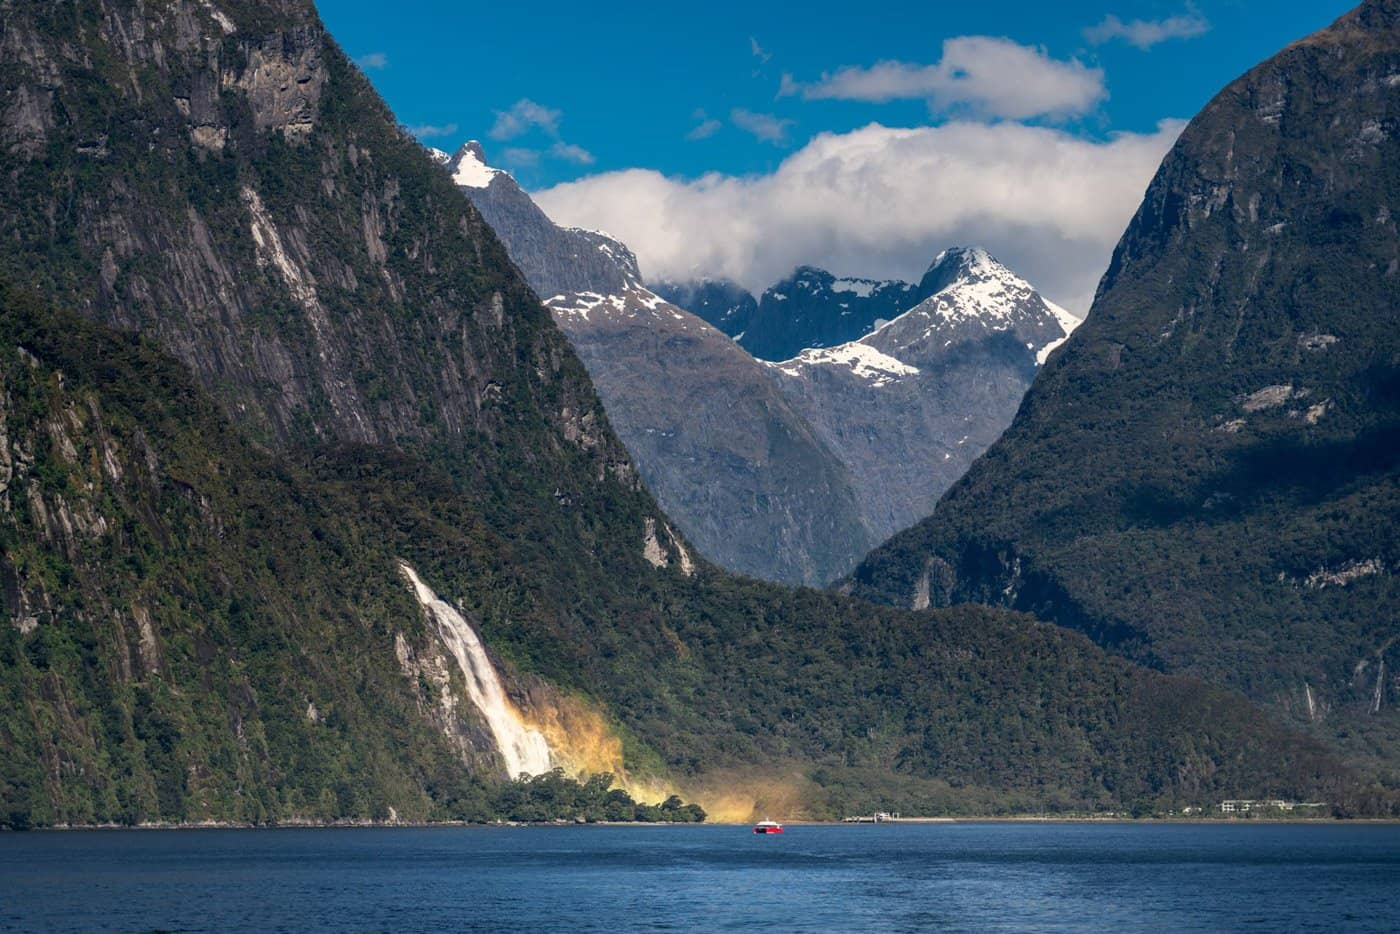 A waterfall and rainbow in Milford Sound, Fiordland National Park, New Zealand - a dream destination to visit.